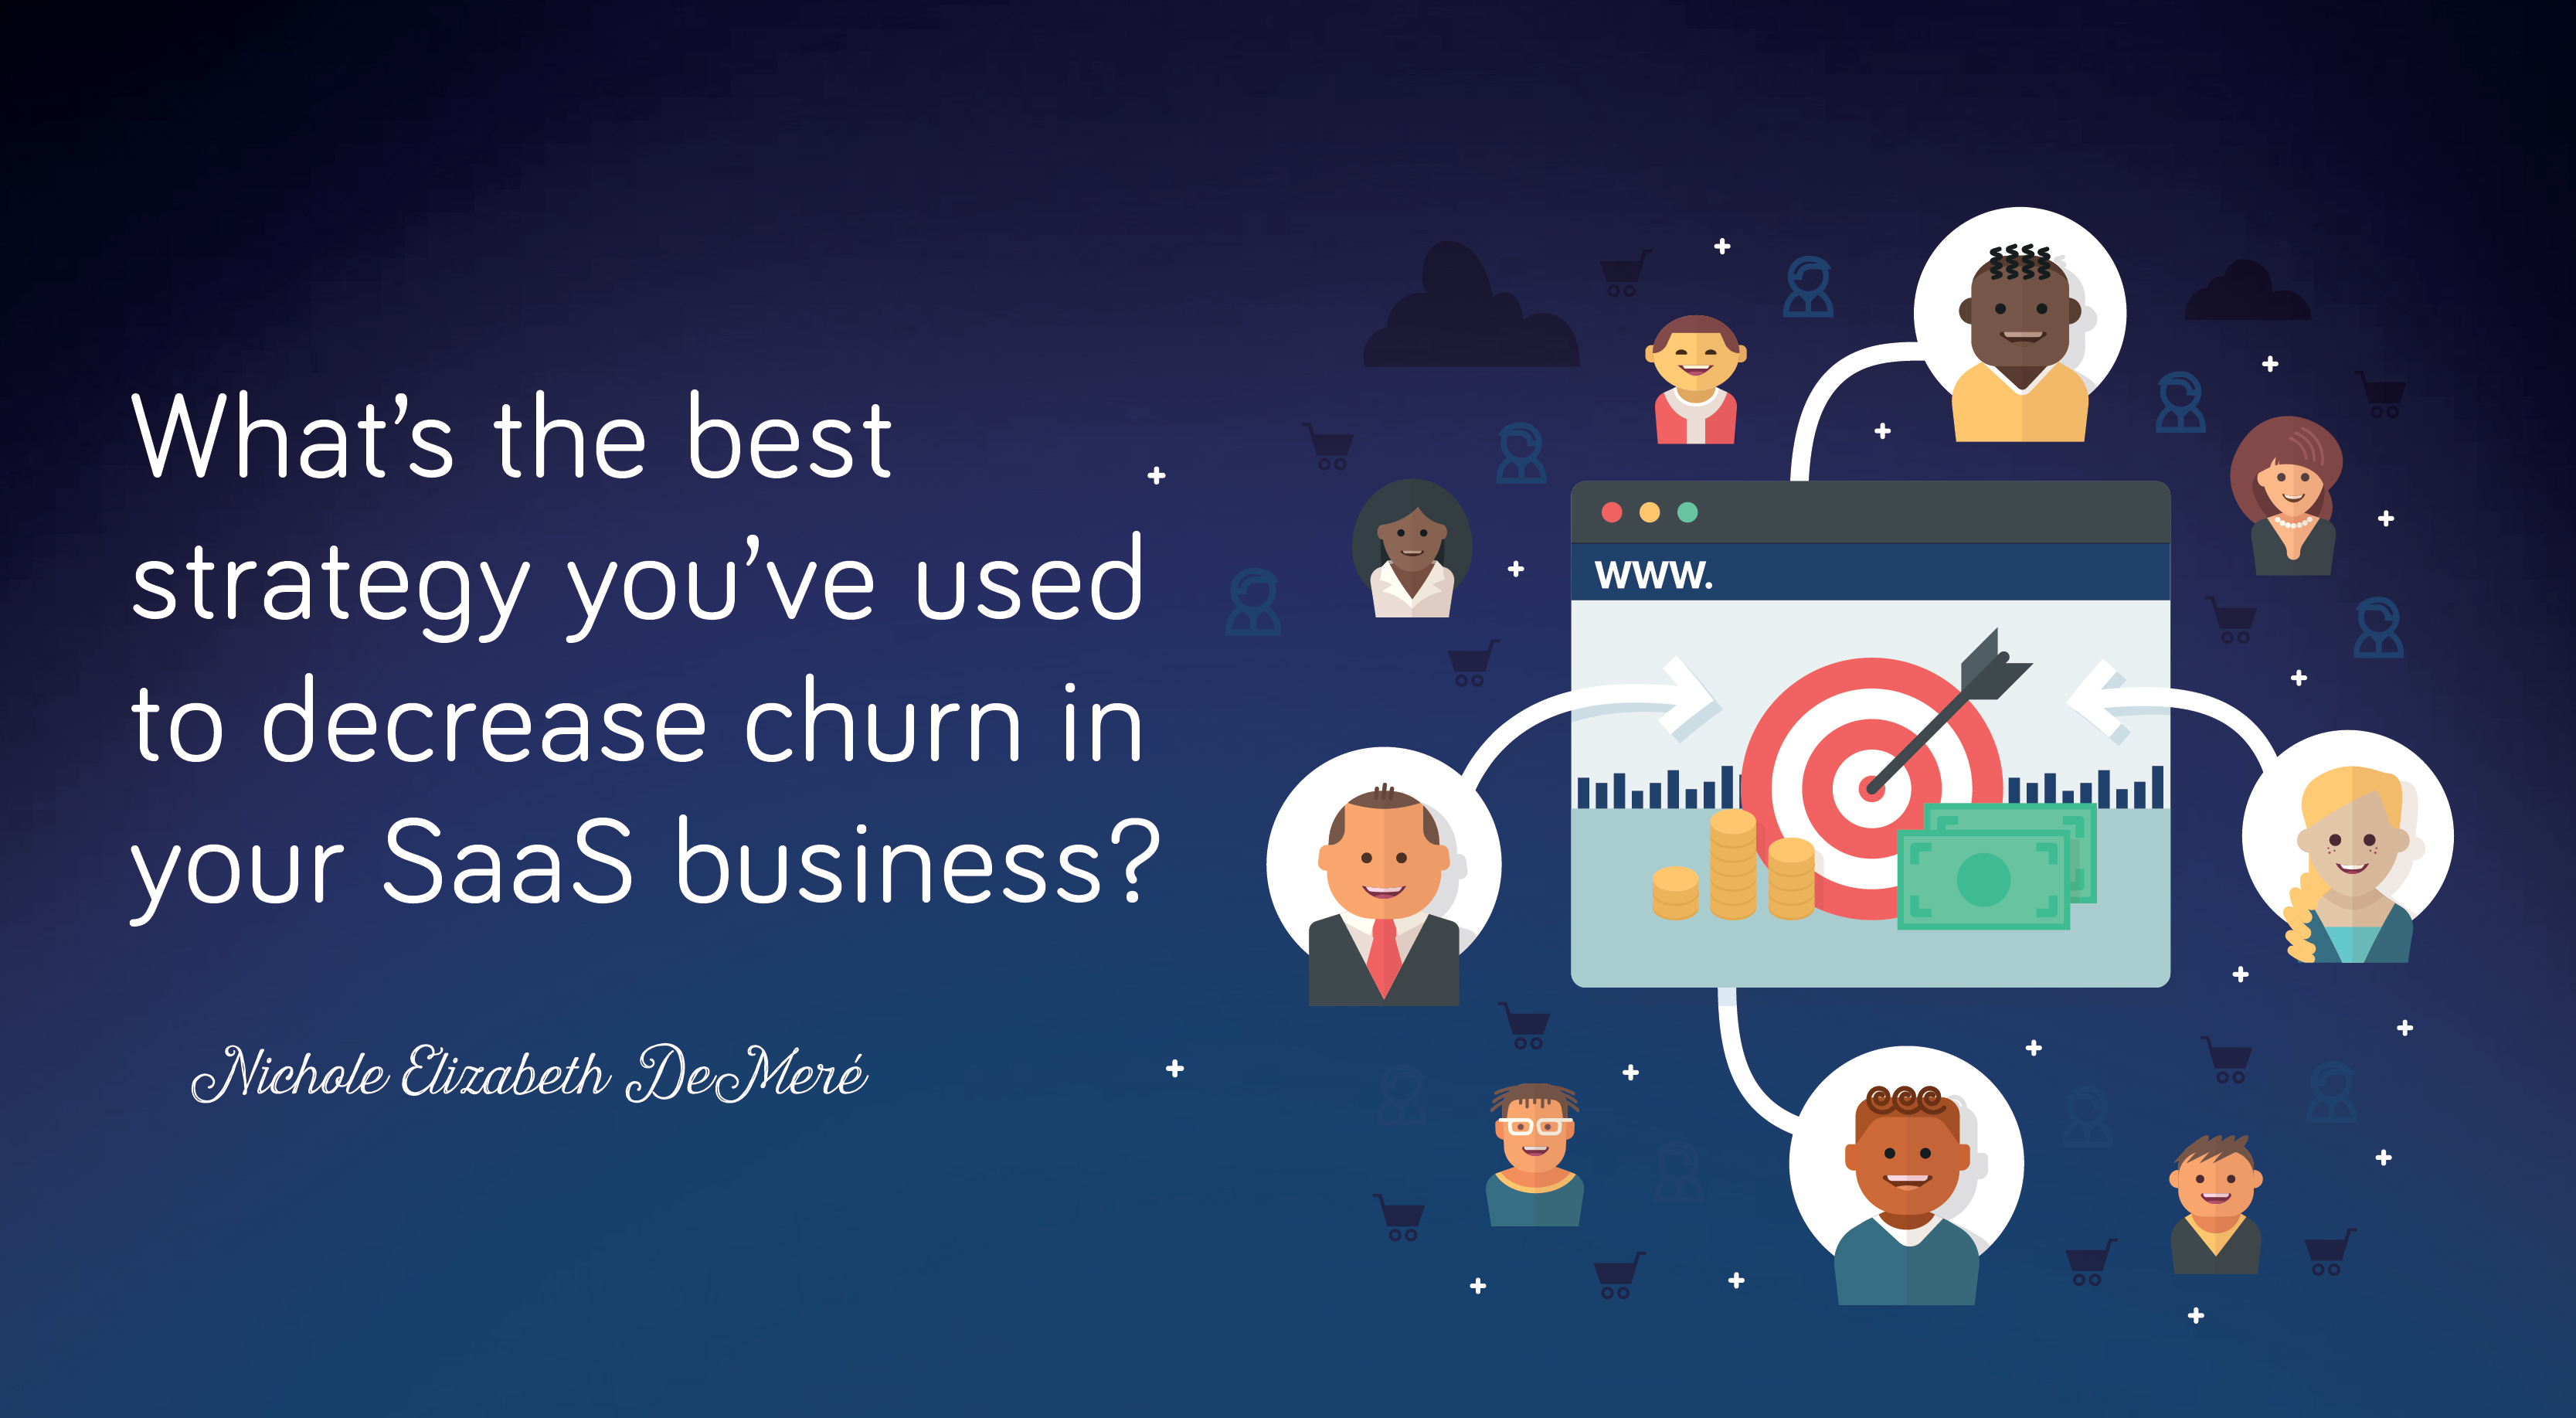 What's the best strategy you've used to decrease churn in